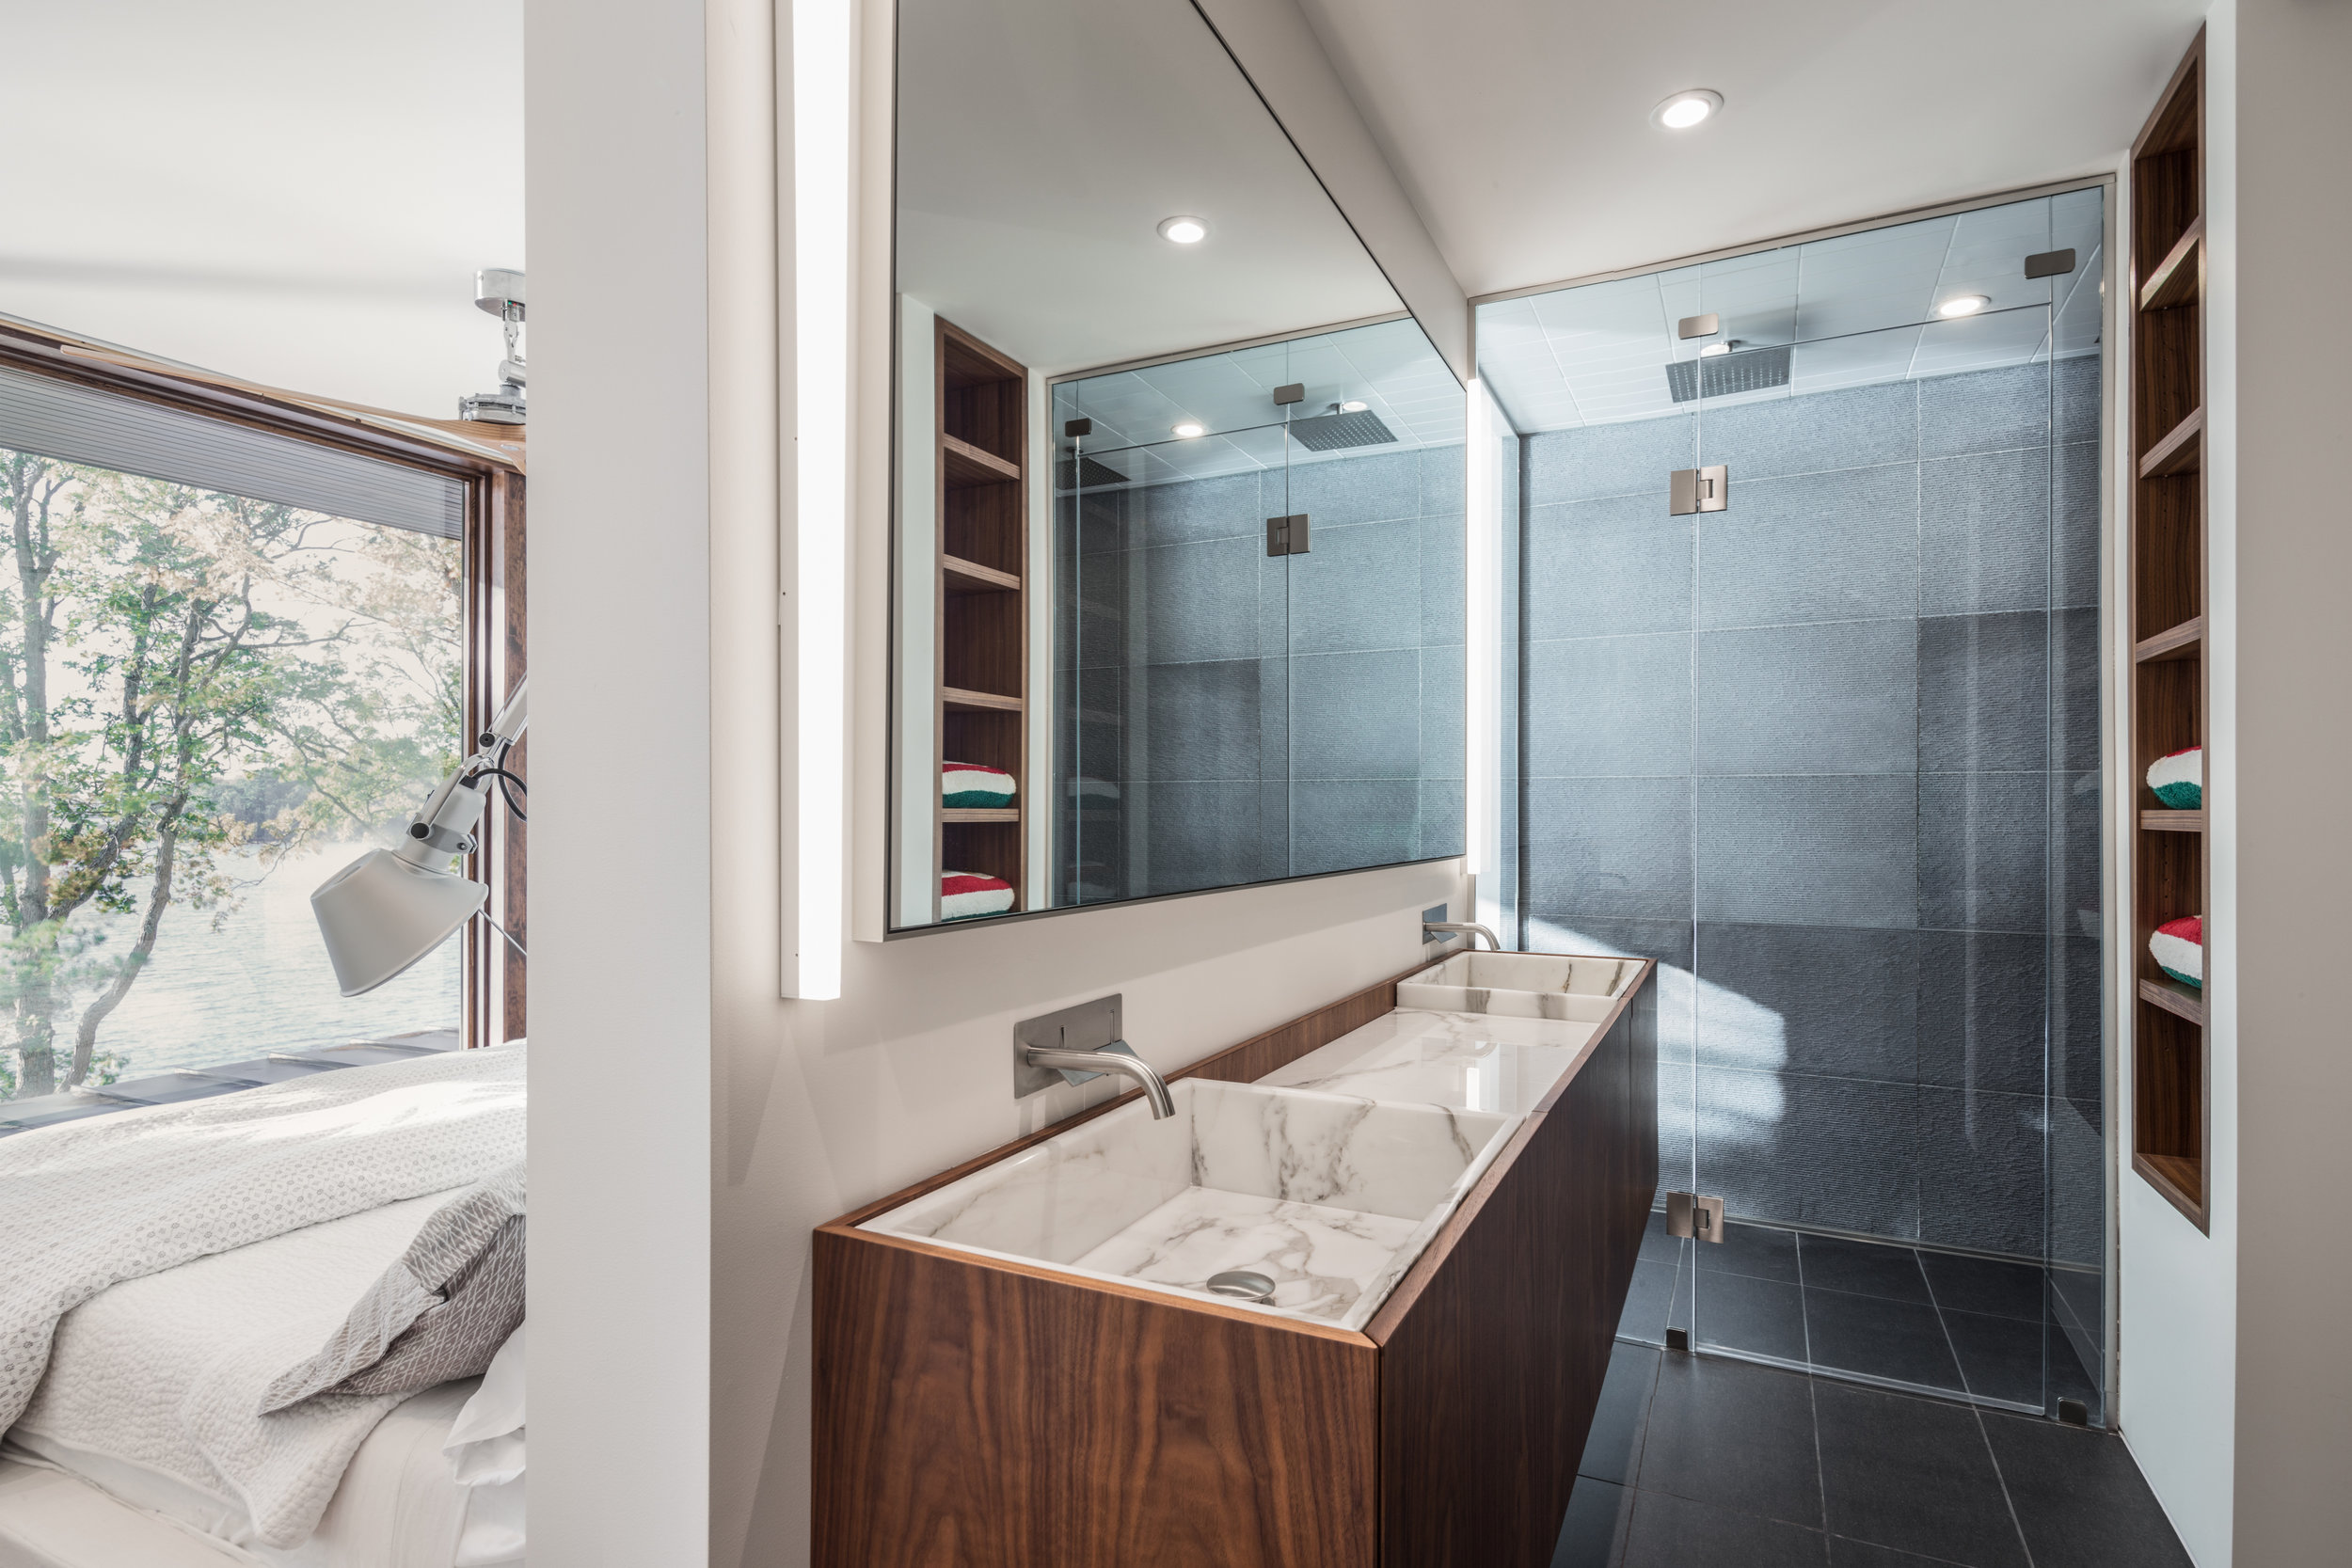 turkel_design_modern_prefab_home_bathroom.jpg